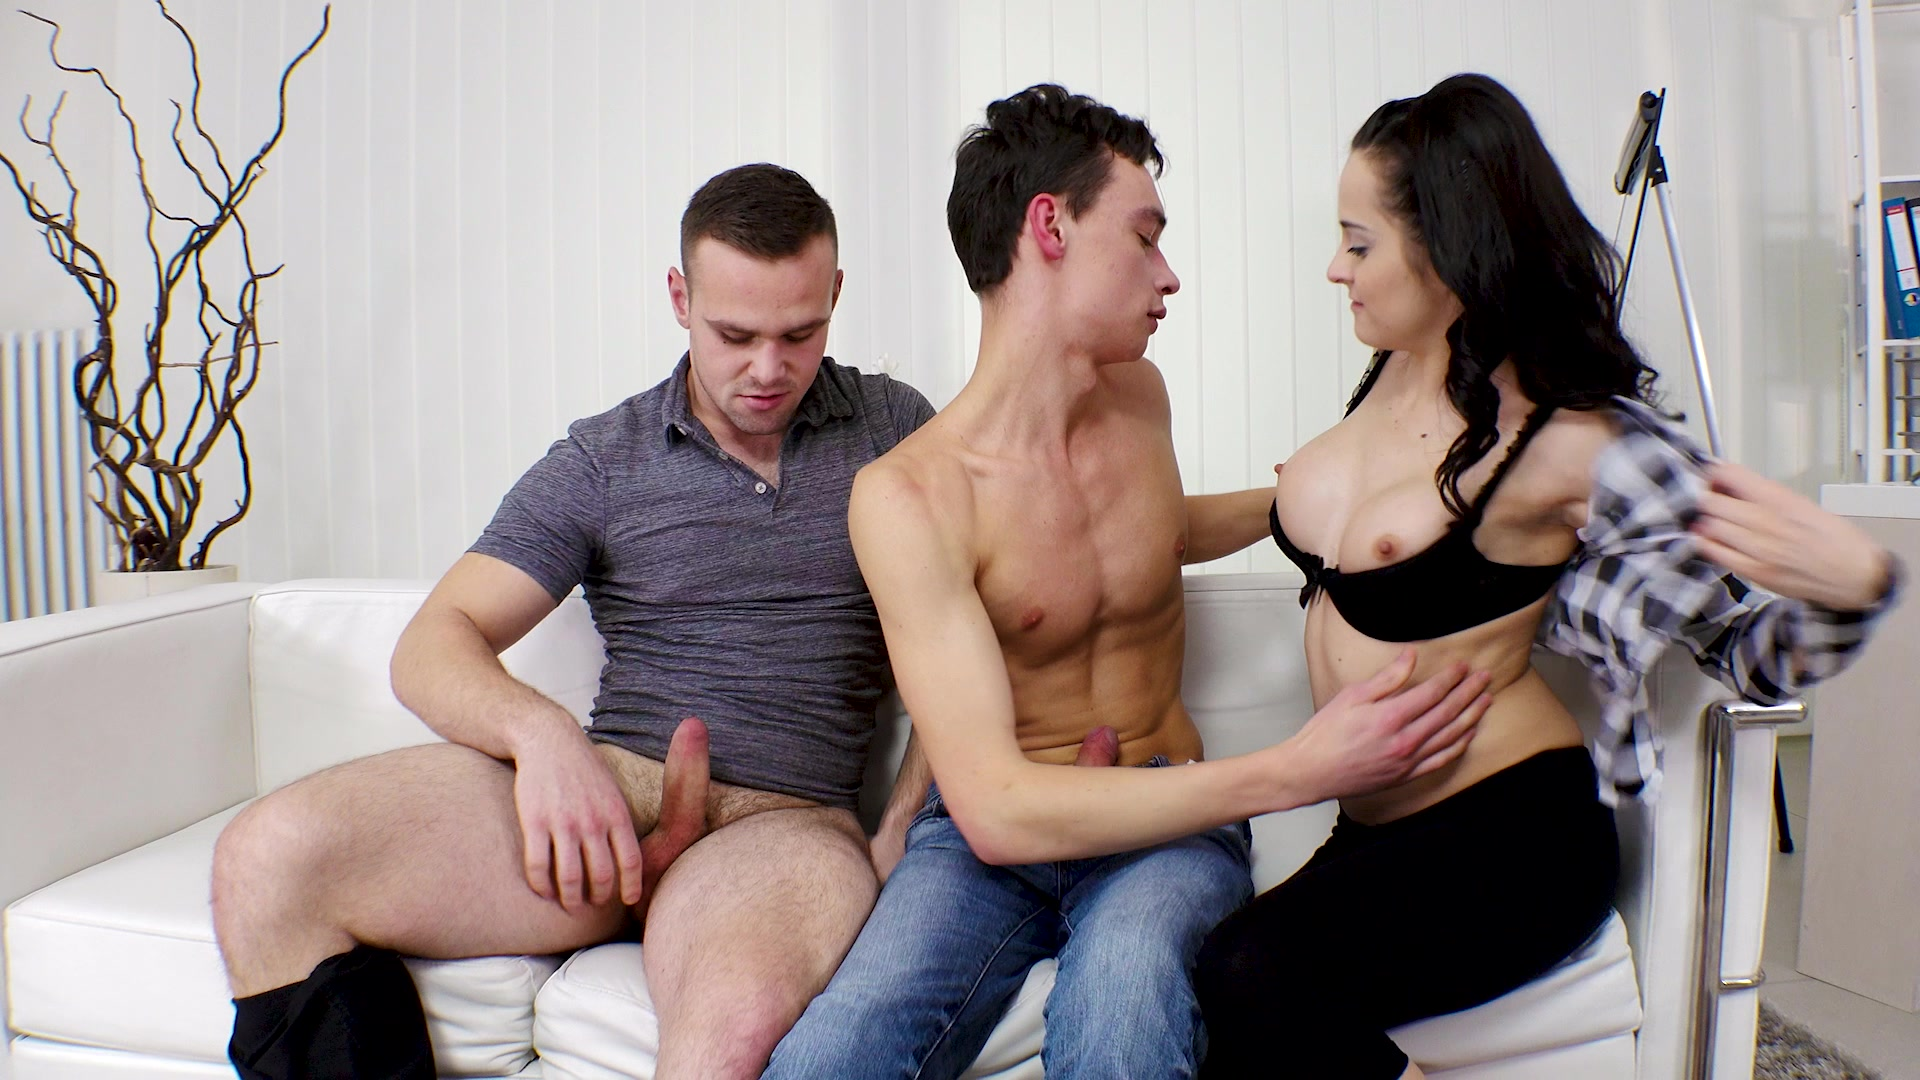 Surprise sex couples monthly john jennifer — pic 3